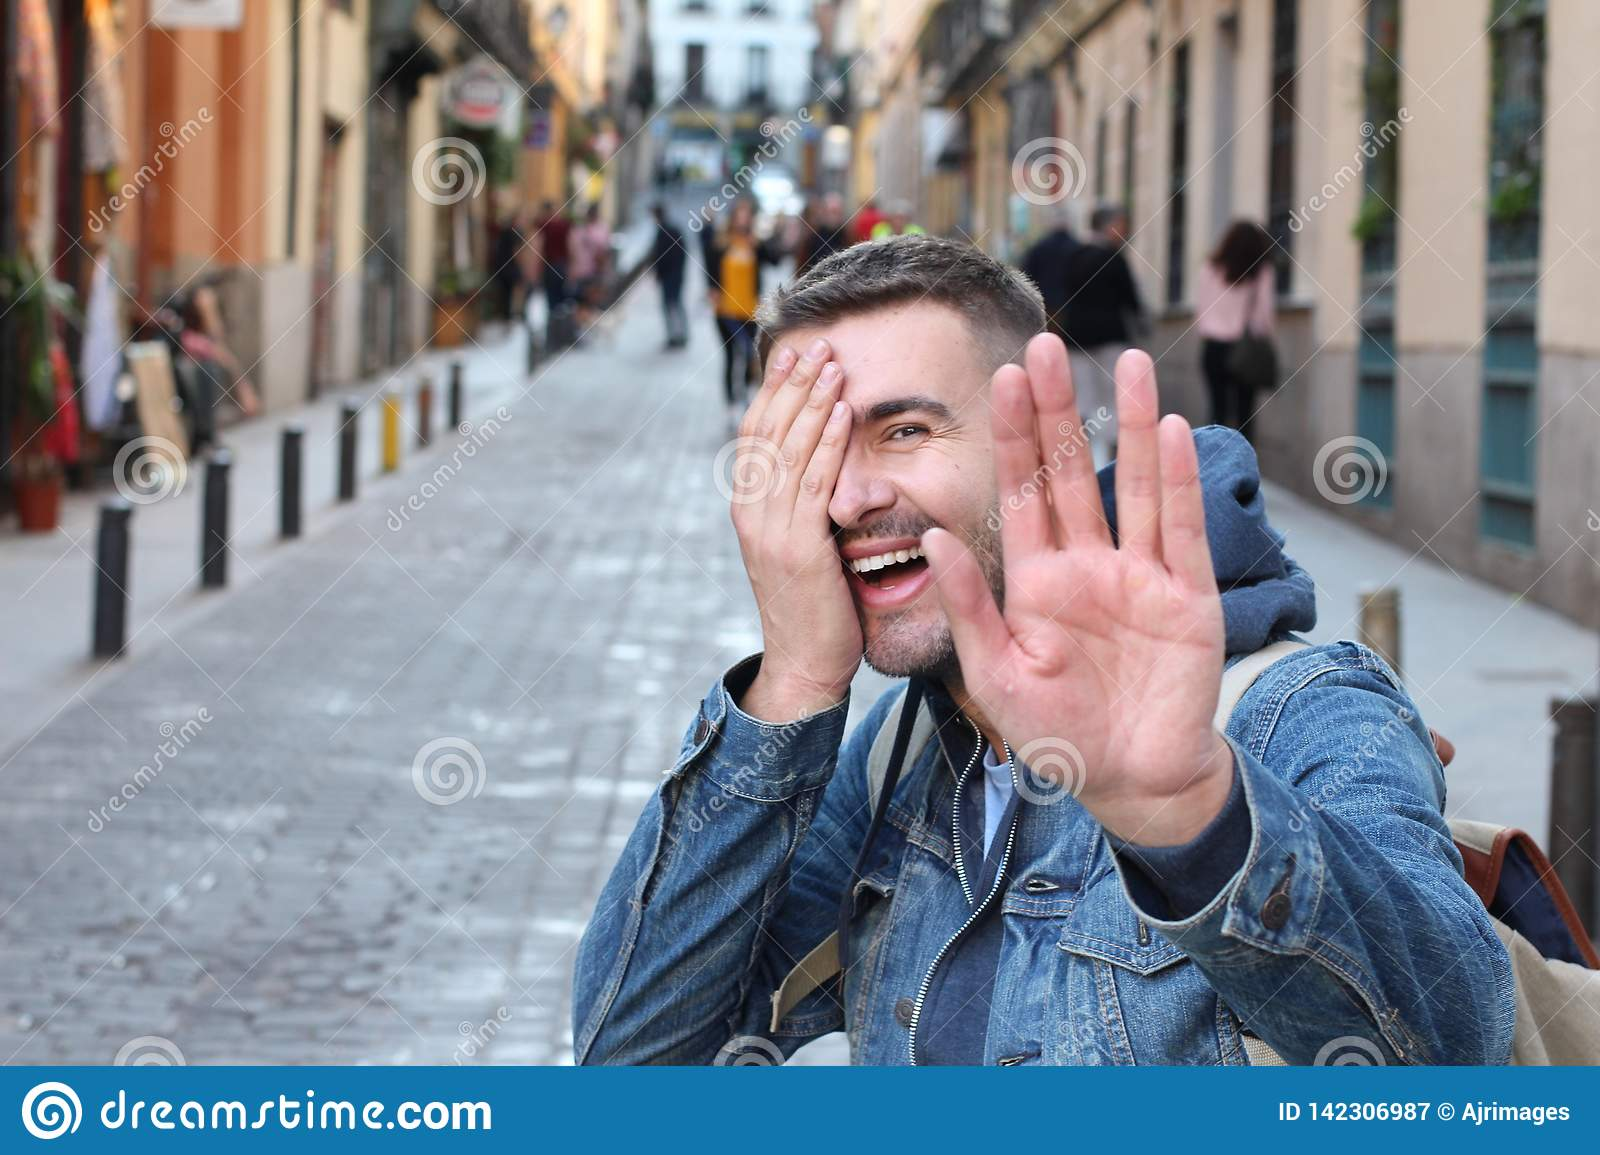 Shy man covering his face while smiling